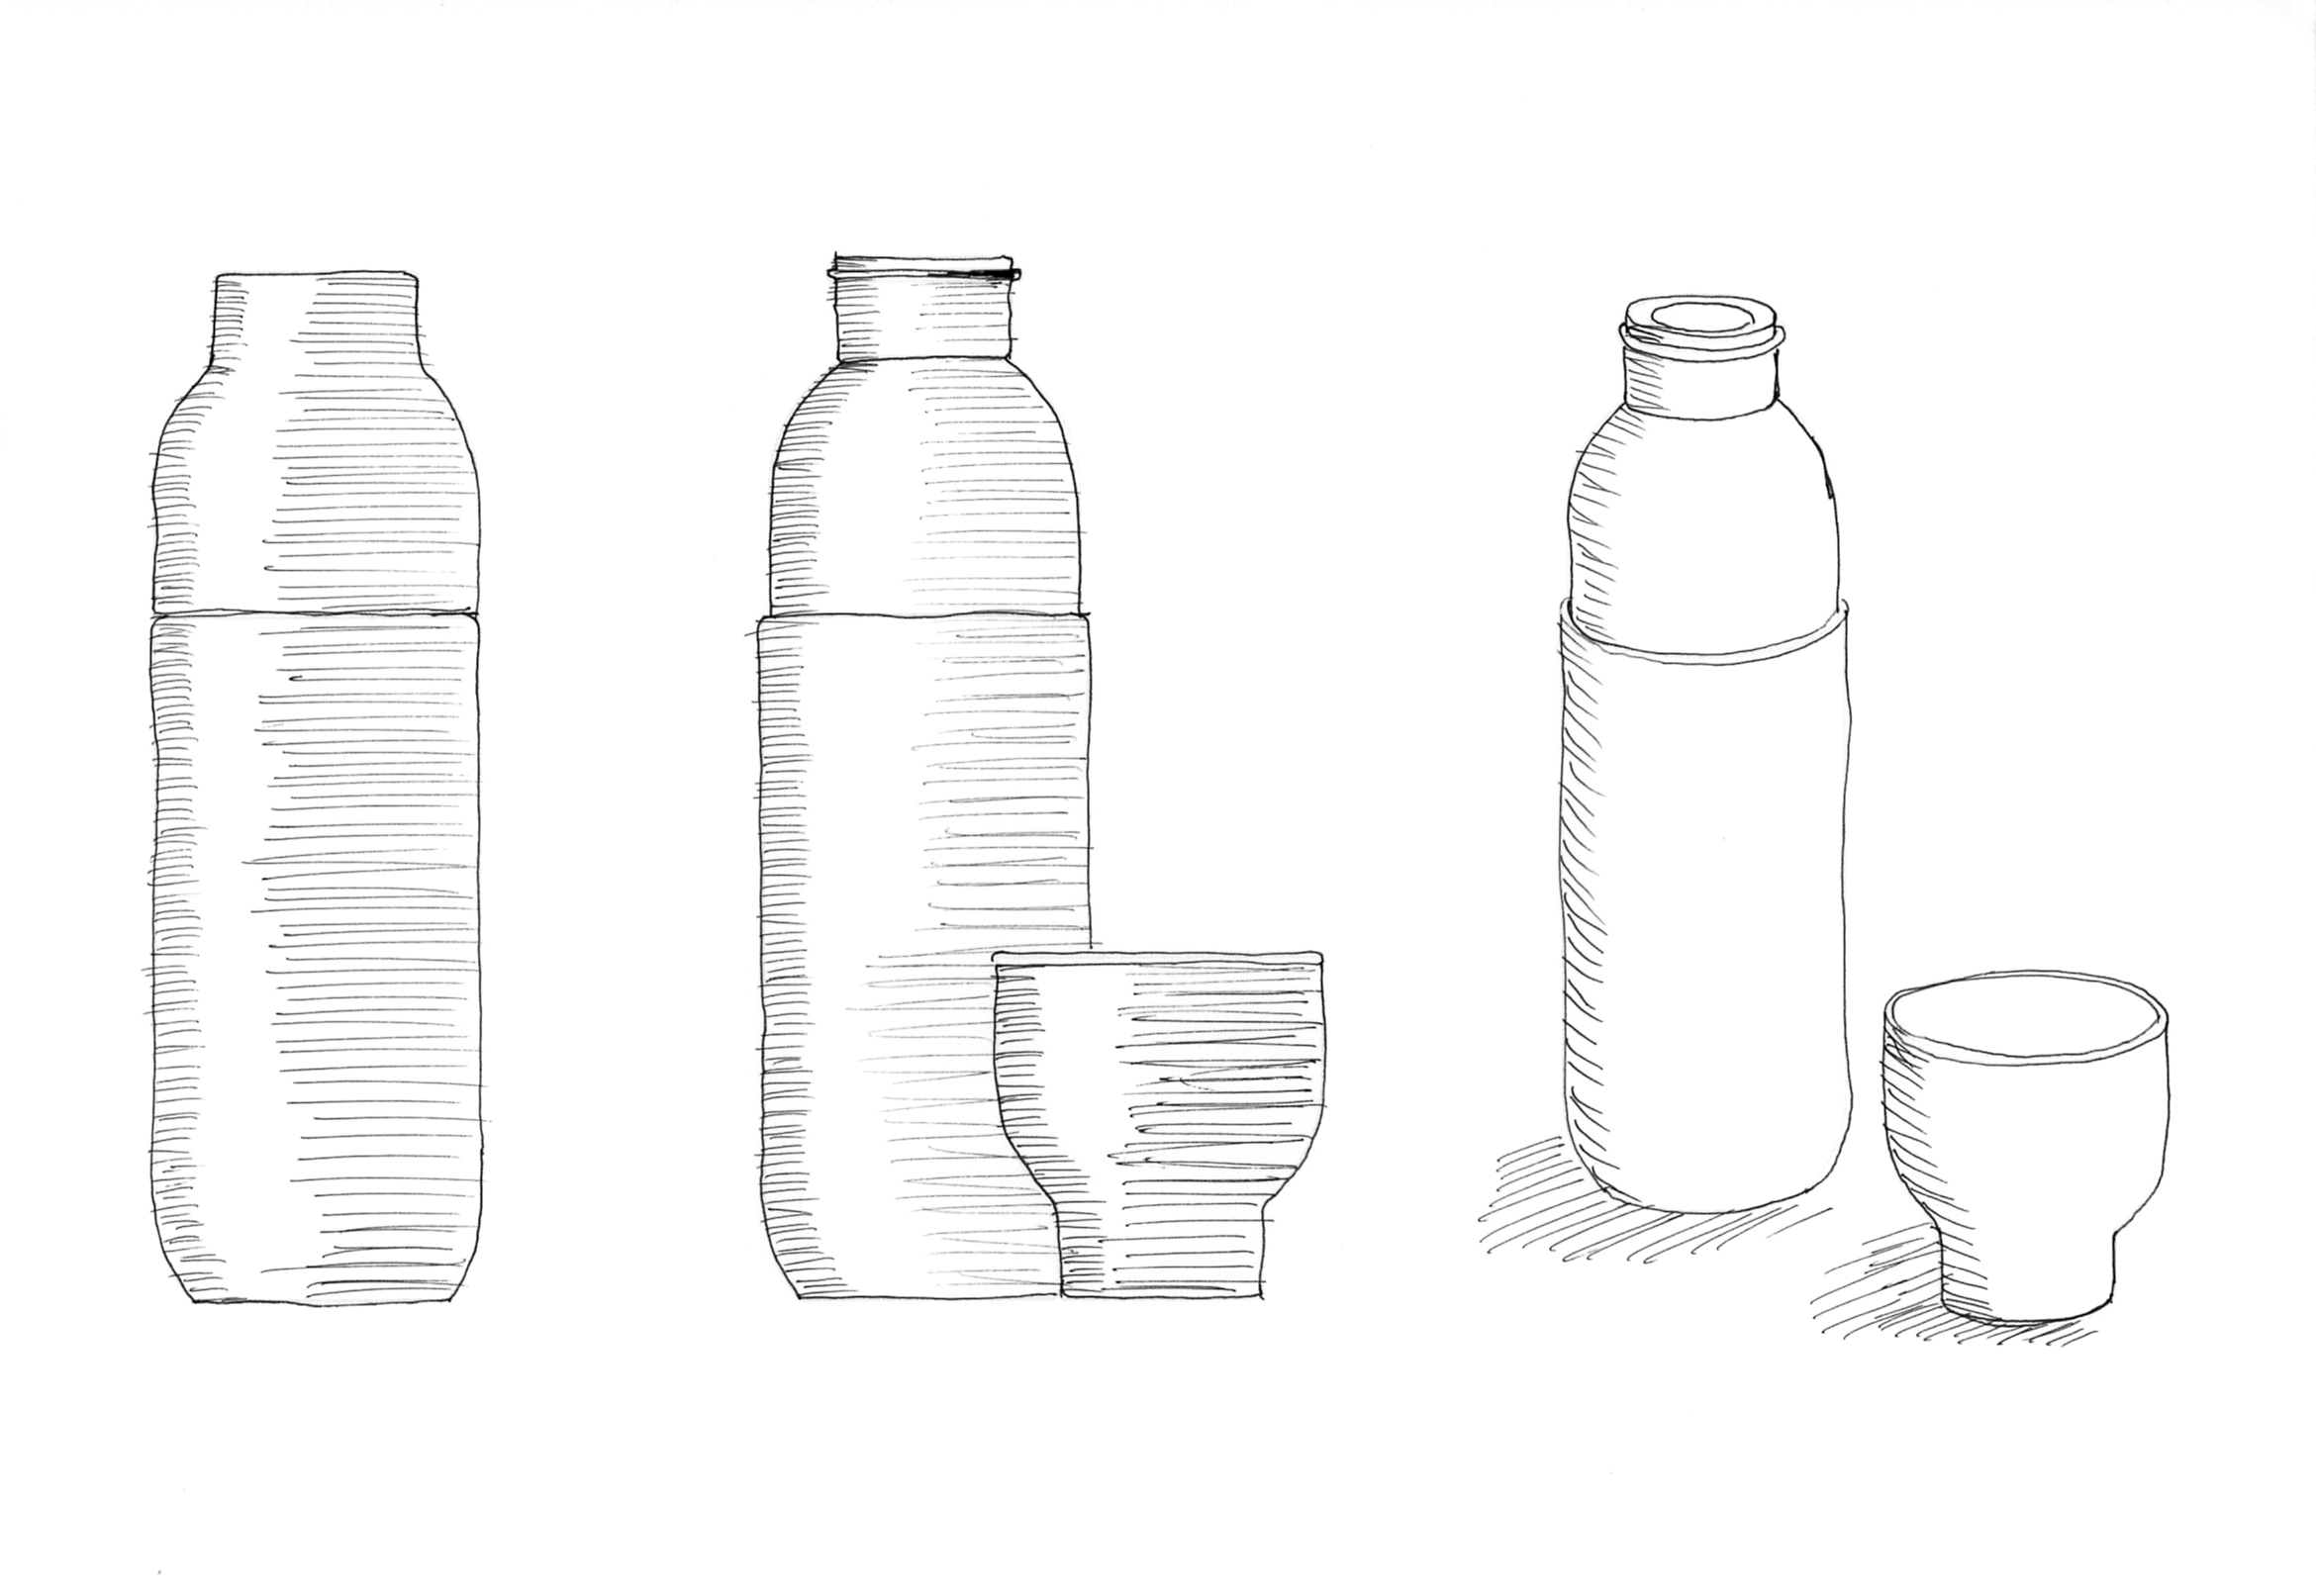 Sketch of the Collar thermo and water bottle by Debiasi Sandri for Stelton